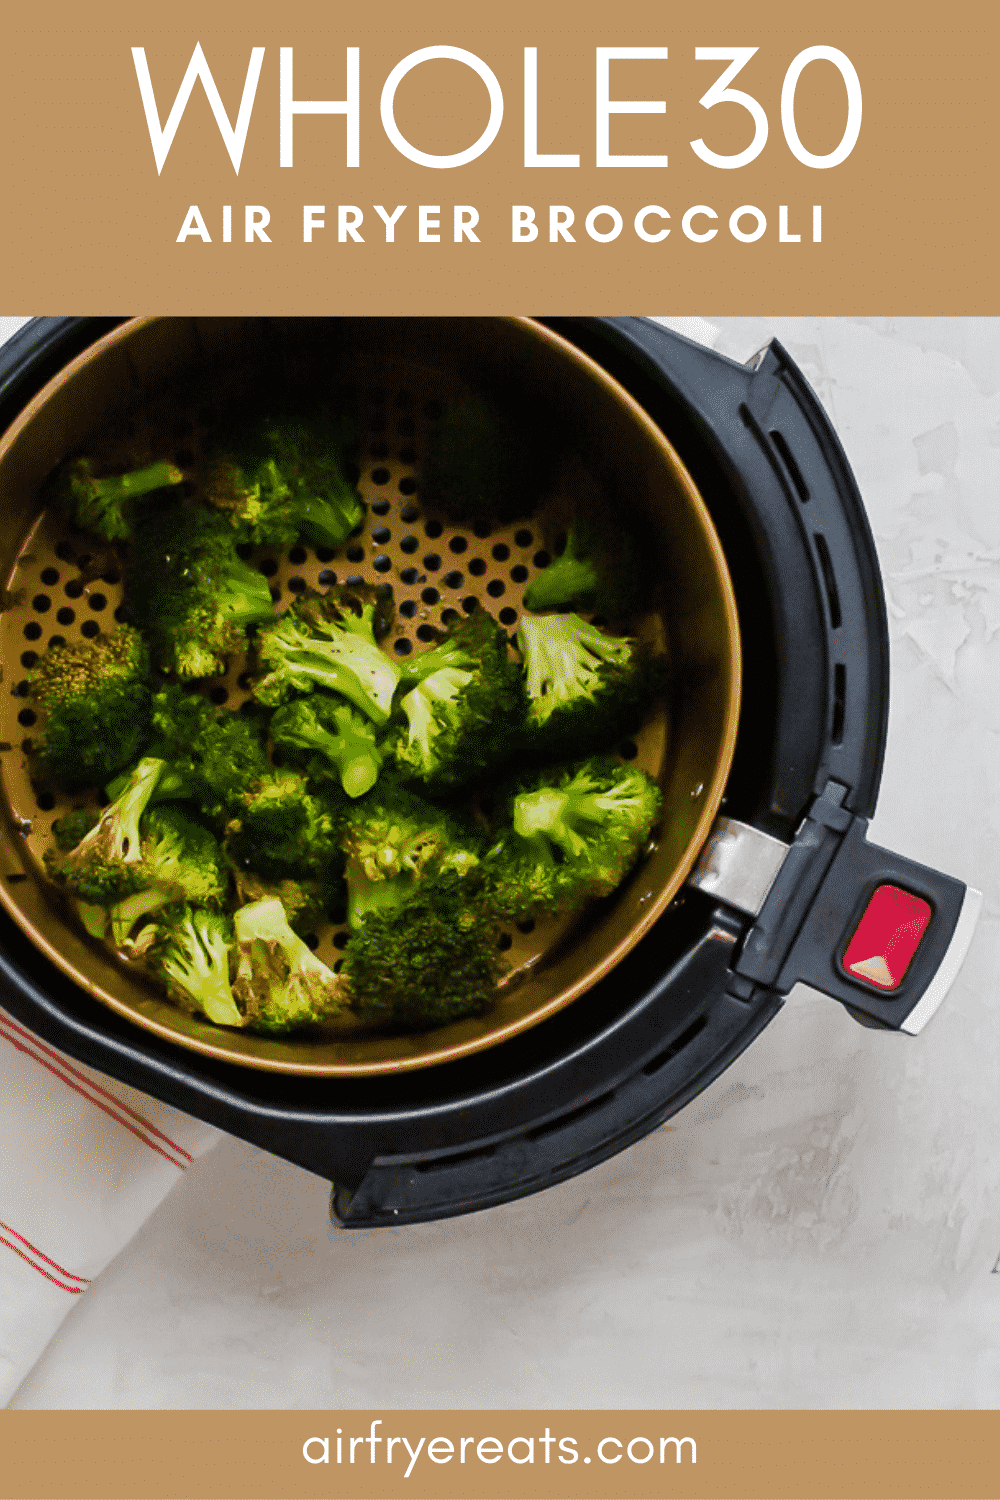 Looking for a great way to add some pizzazz to broccoli? Try air frying it! Air Fryer Broccoli is the perfect combination of crispy and tender, and you won't believe how easy it is to make! #broccoli #airfryerbroccoli #airfriedbroccoli via @vegetarianmamma